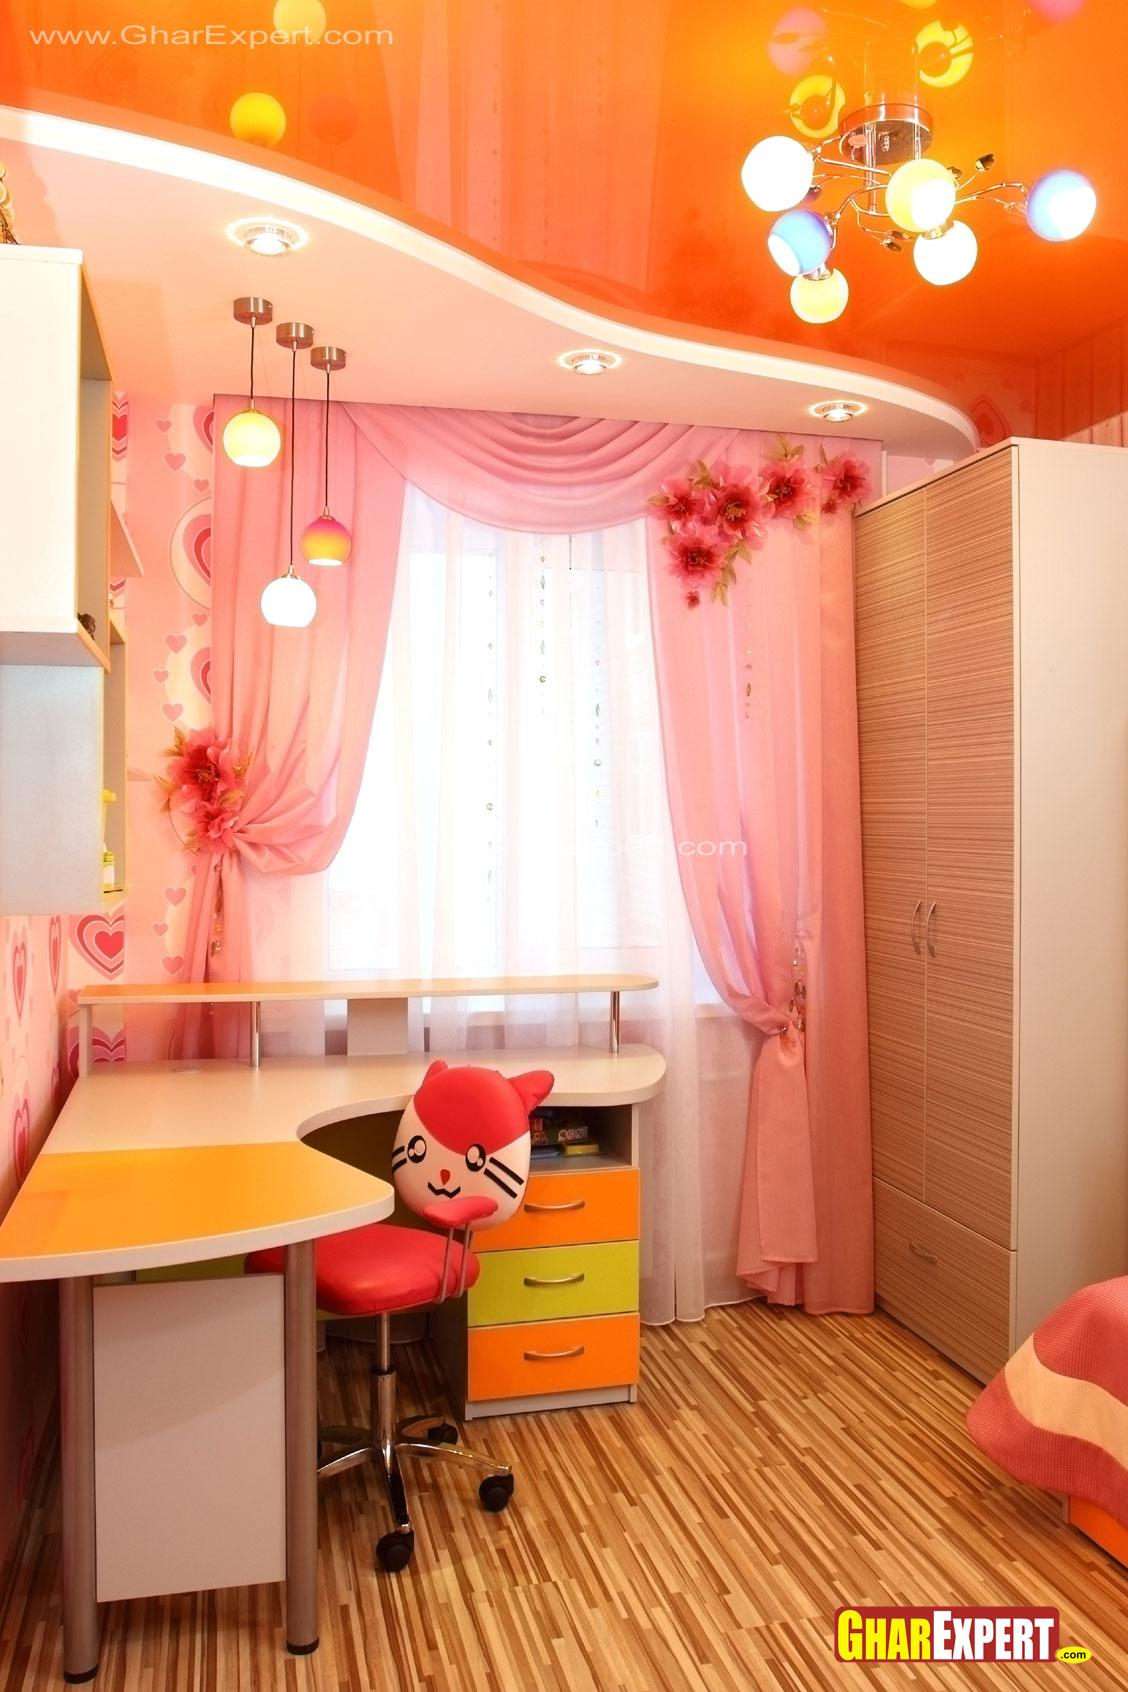 Kids Room False Ceiling Design: Kids Room Ceiling Design And Furniture